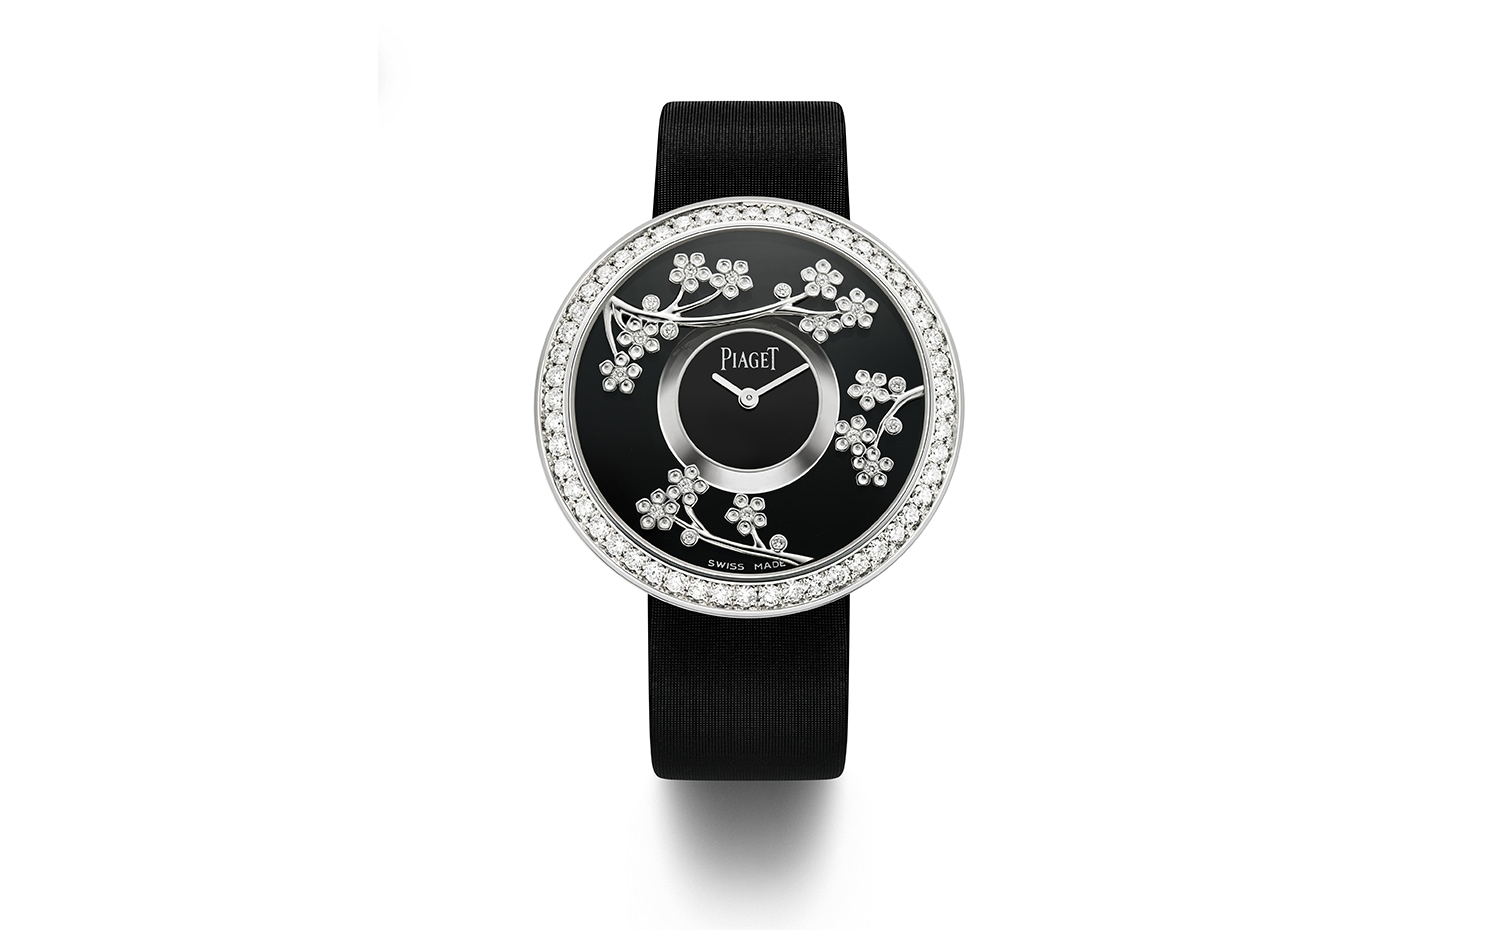 伯爵 (Piaget):Limelight Dancing Light G0A38569